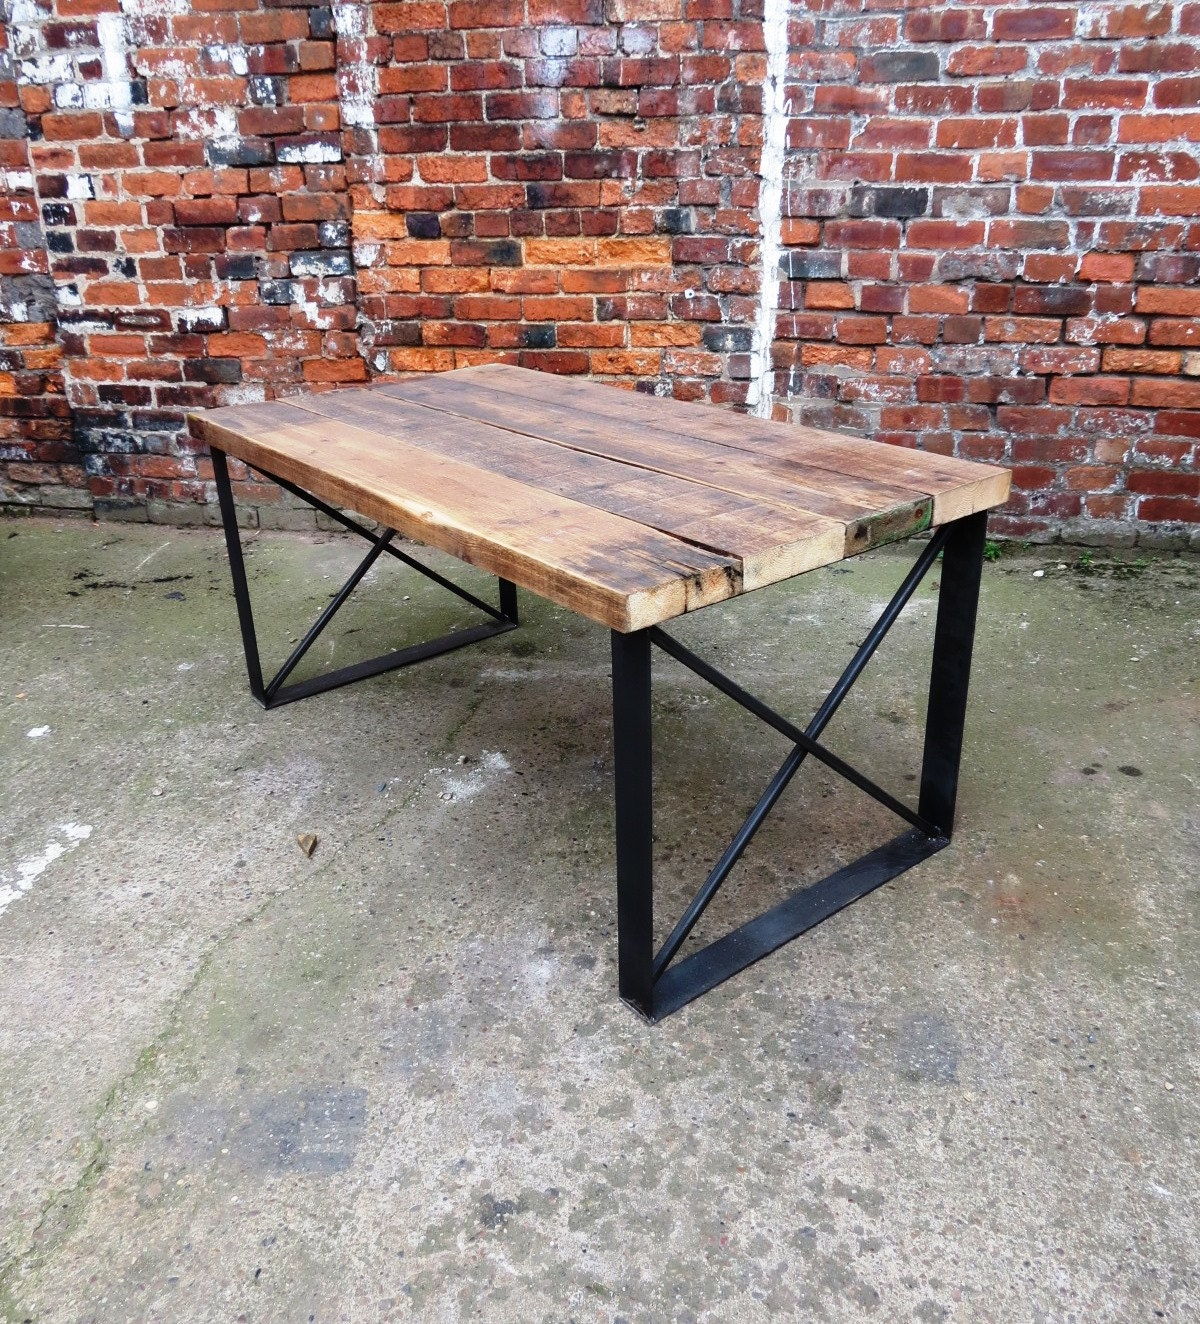 details beautiful handmade table made from reclaimed timber and heavyduty steel